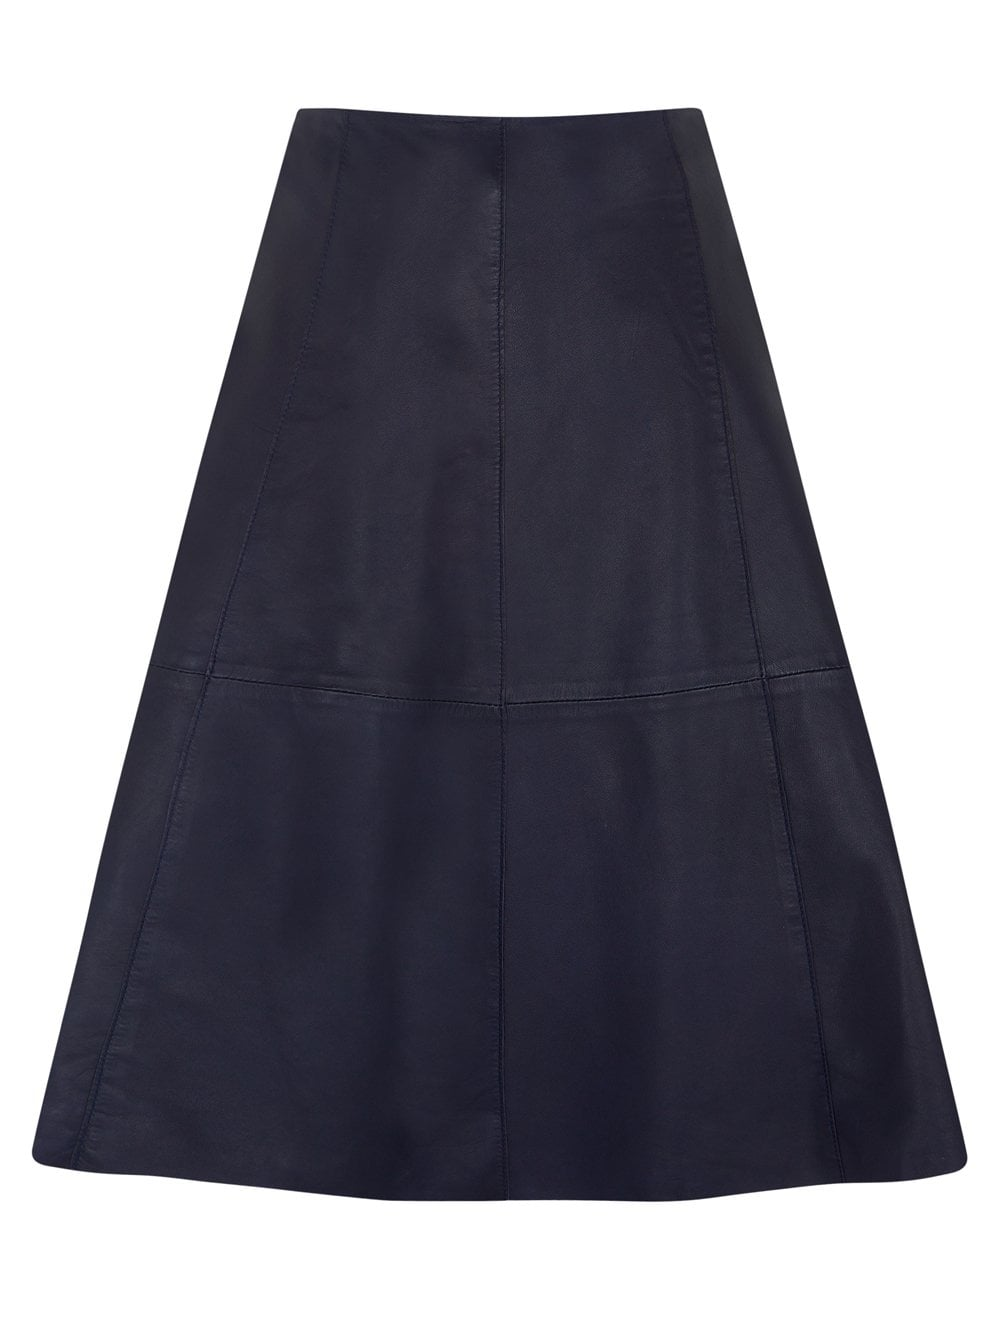 Navy Flared Leather Skirt